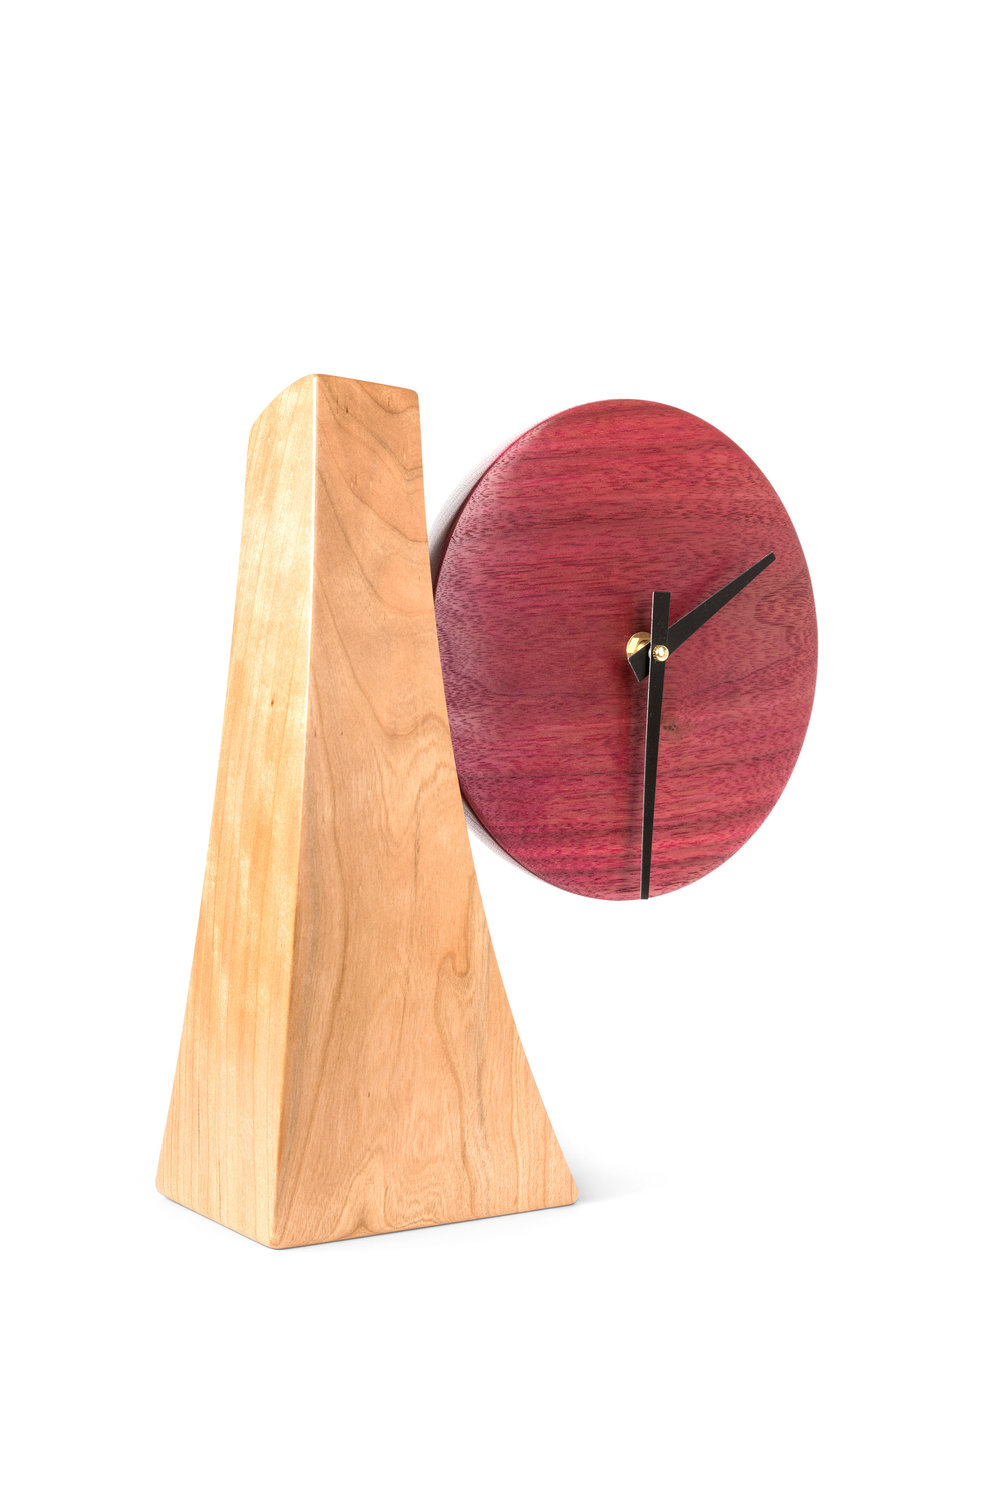 Adjustable desk clock